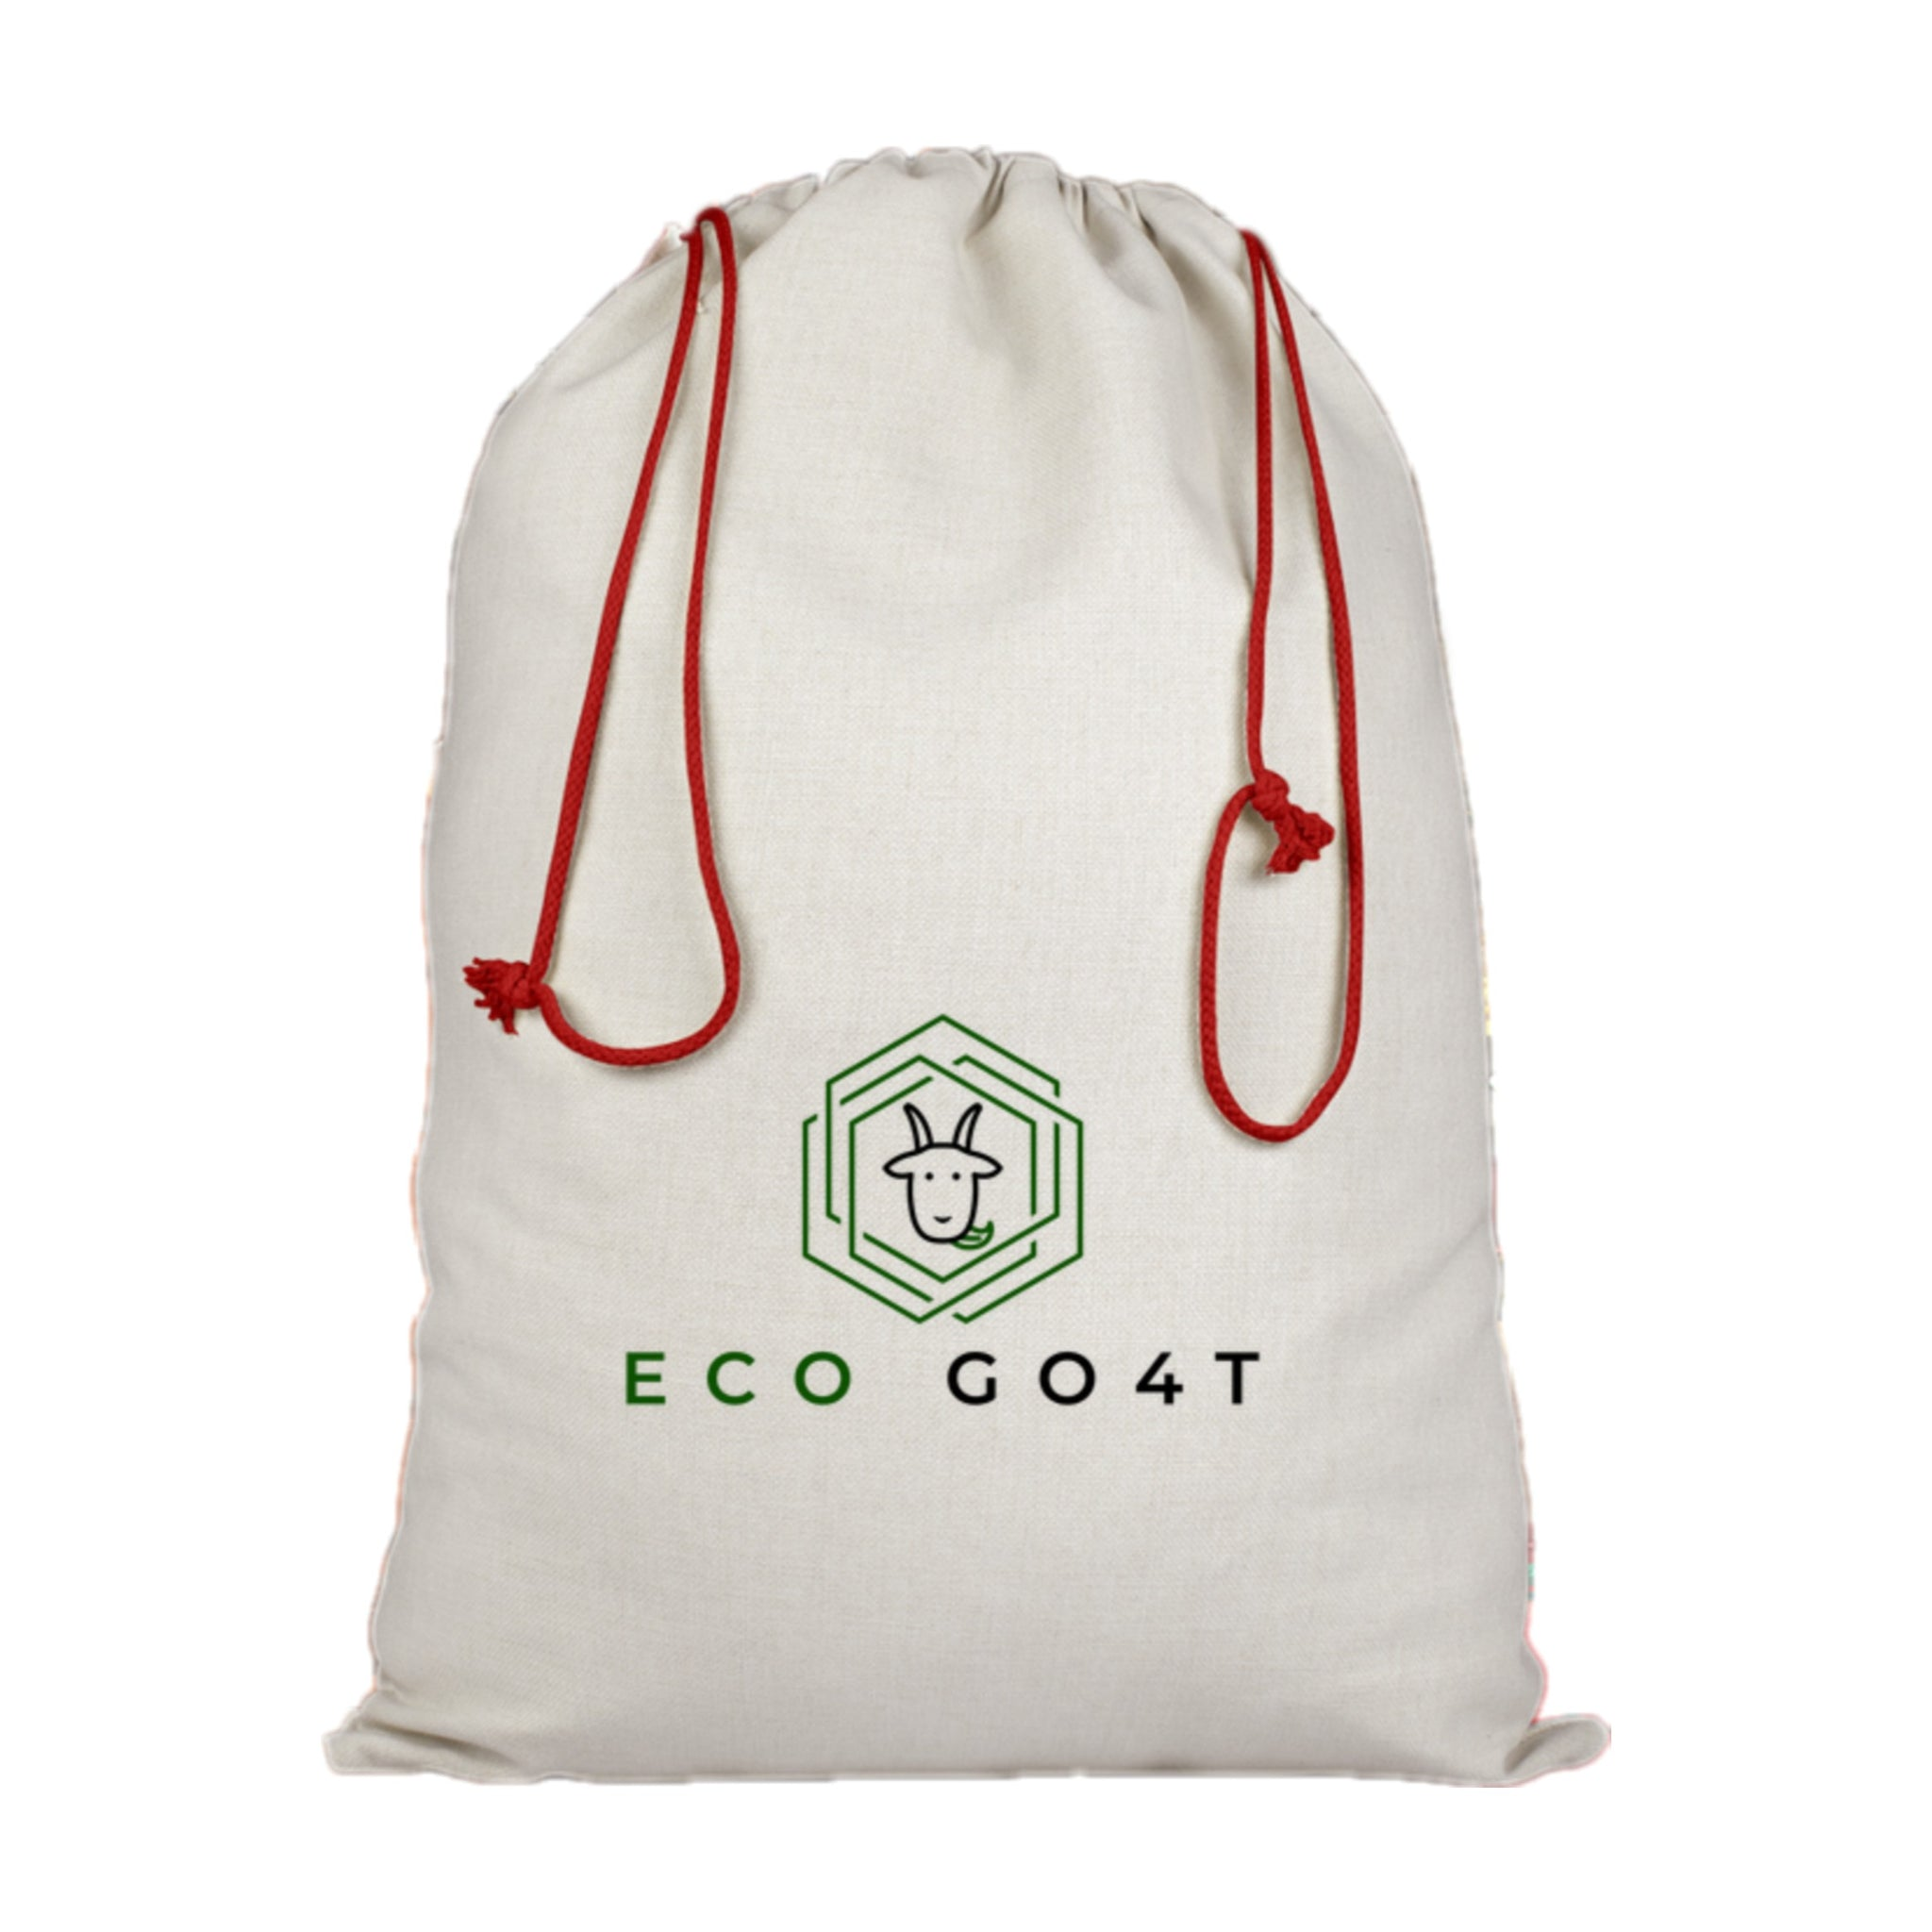 eco friendly, environmental friendly, ecological, bio, biological, reusable, environmentalist, organic, green, sustainable clothing, sustainable fashion, sustainable brands, sustainable development. plastic free shop, sack,